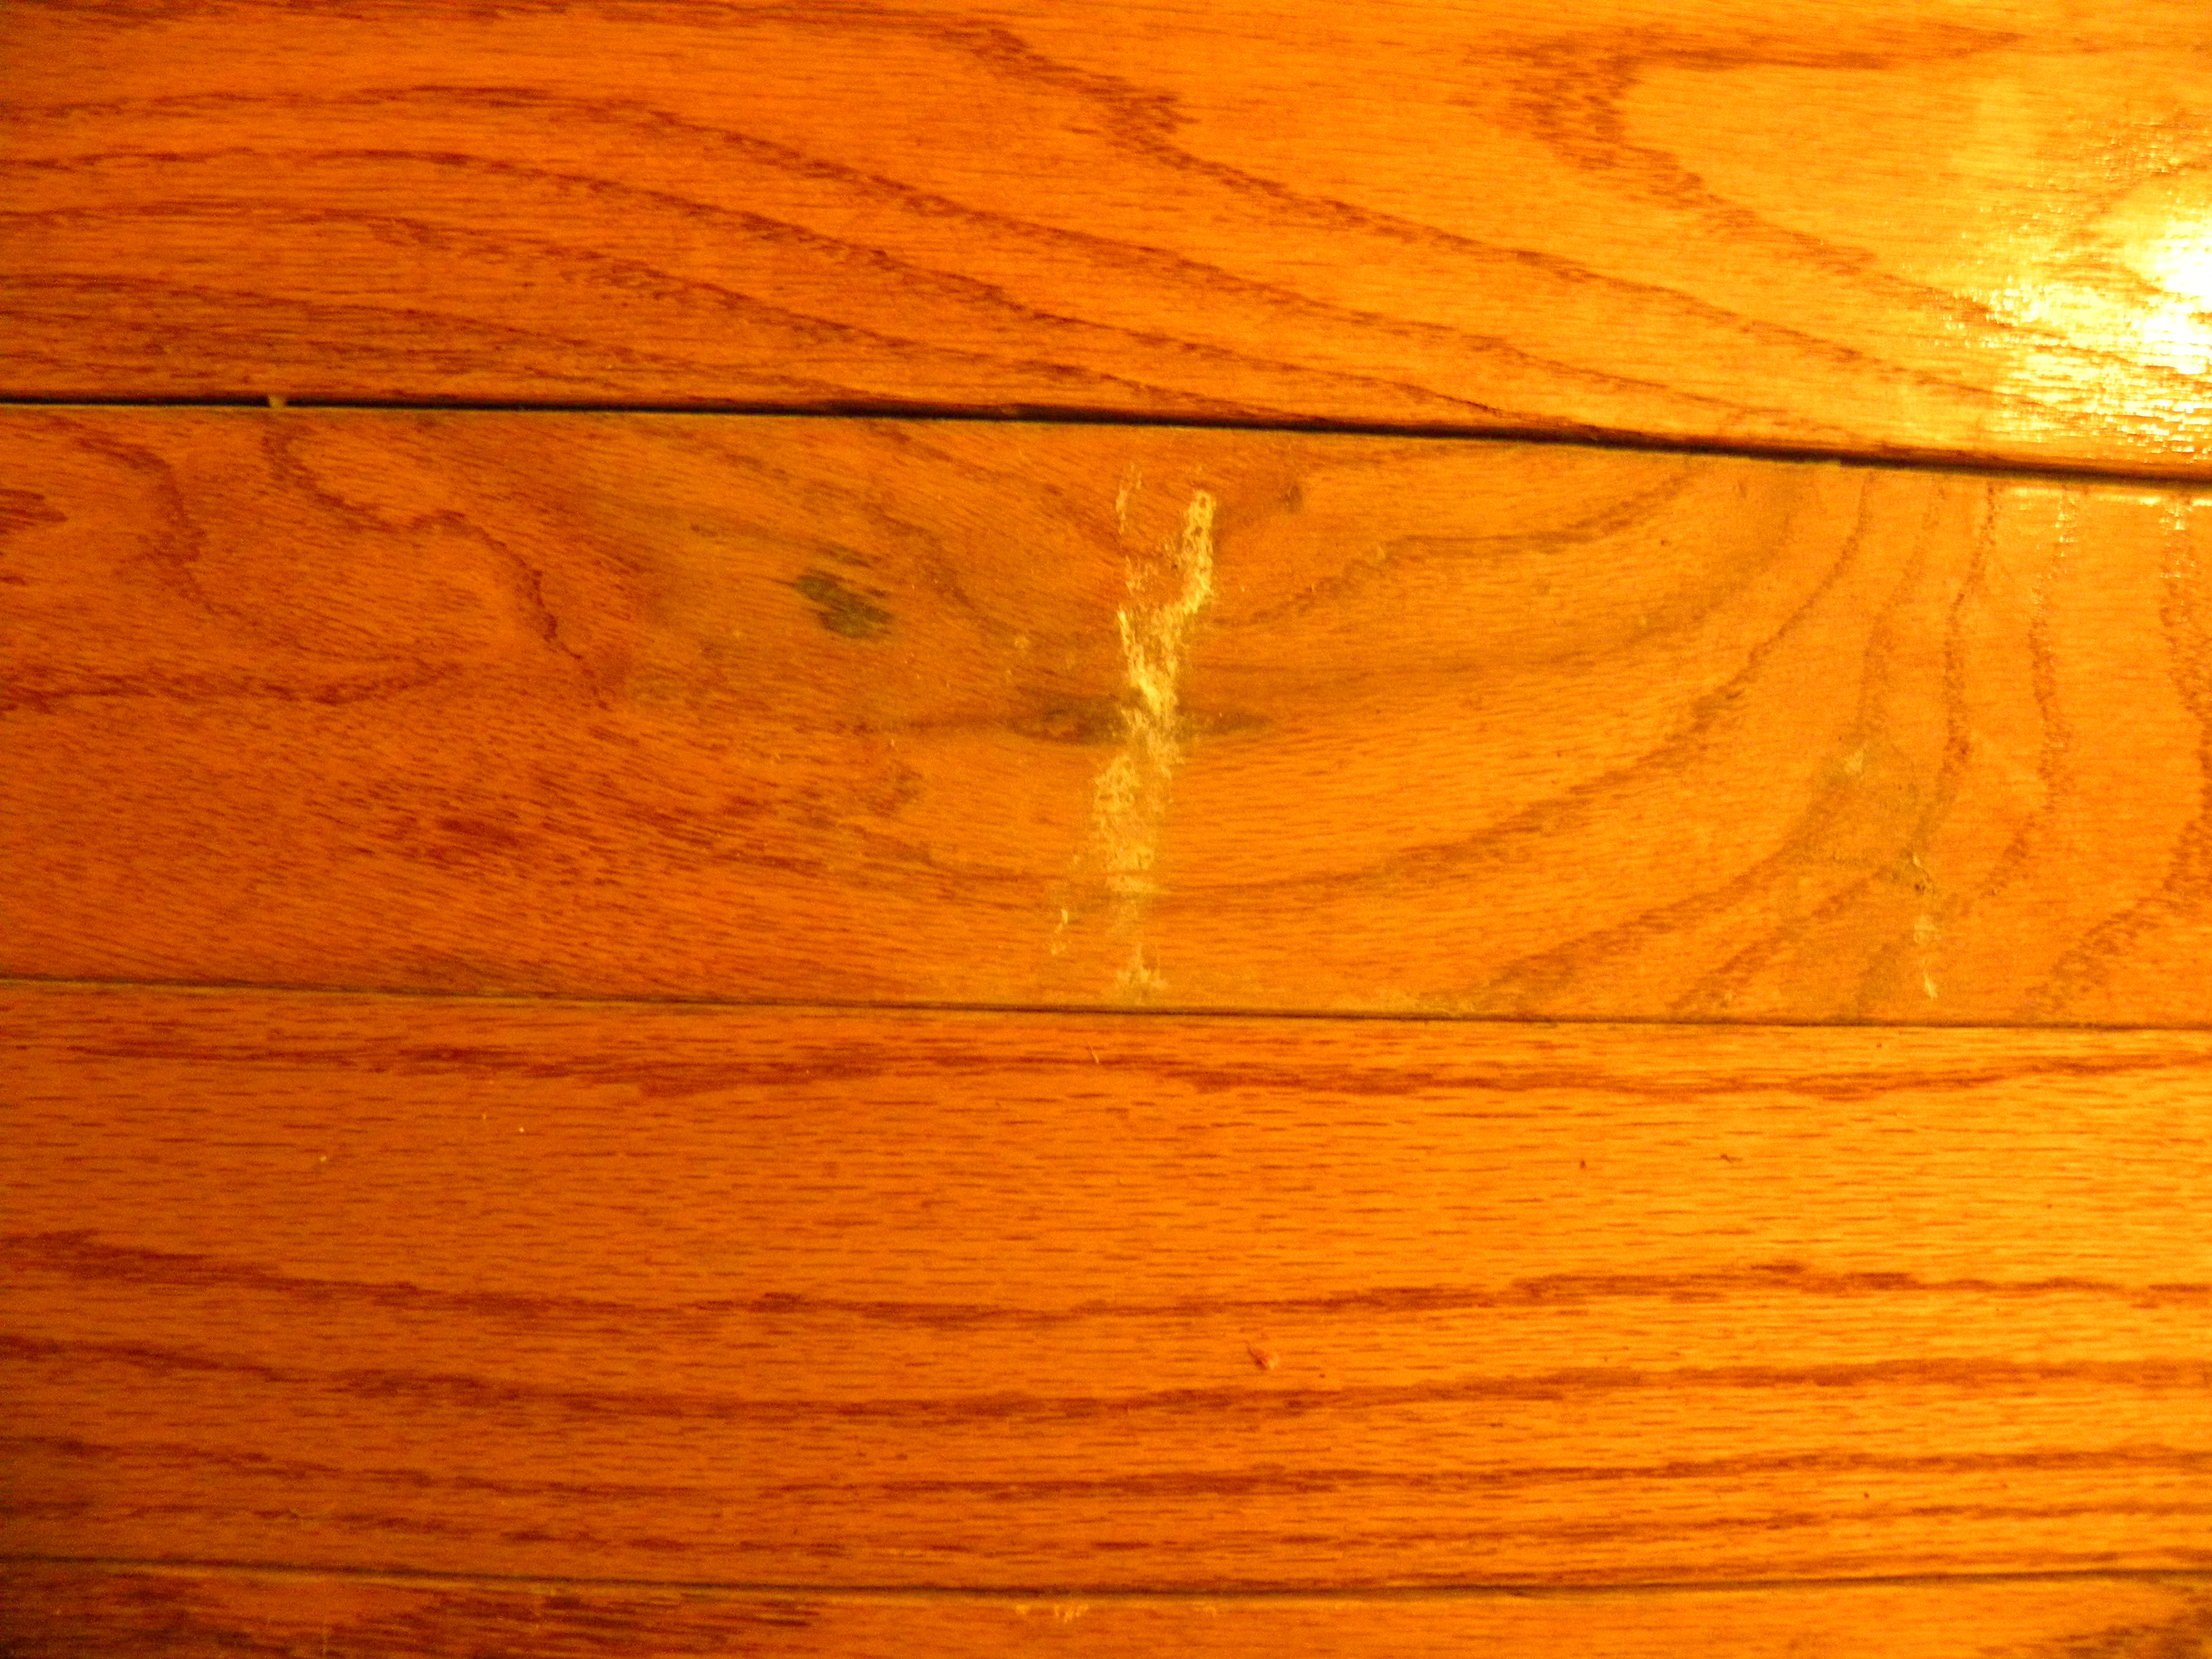 How to repair hardwood floor damage pro construction guide for Hardwood floors repair